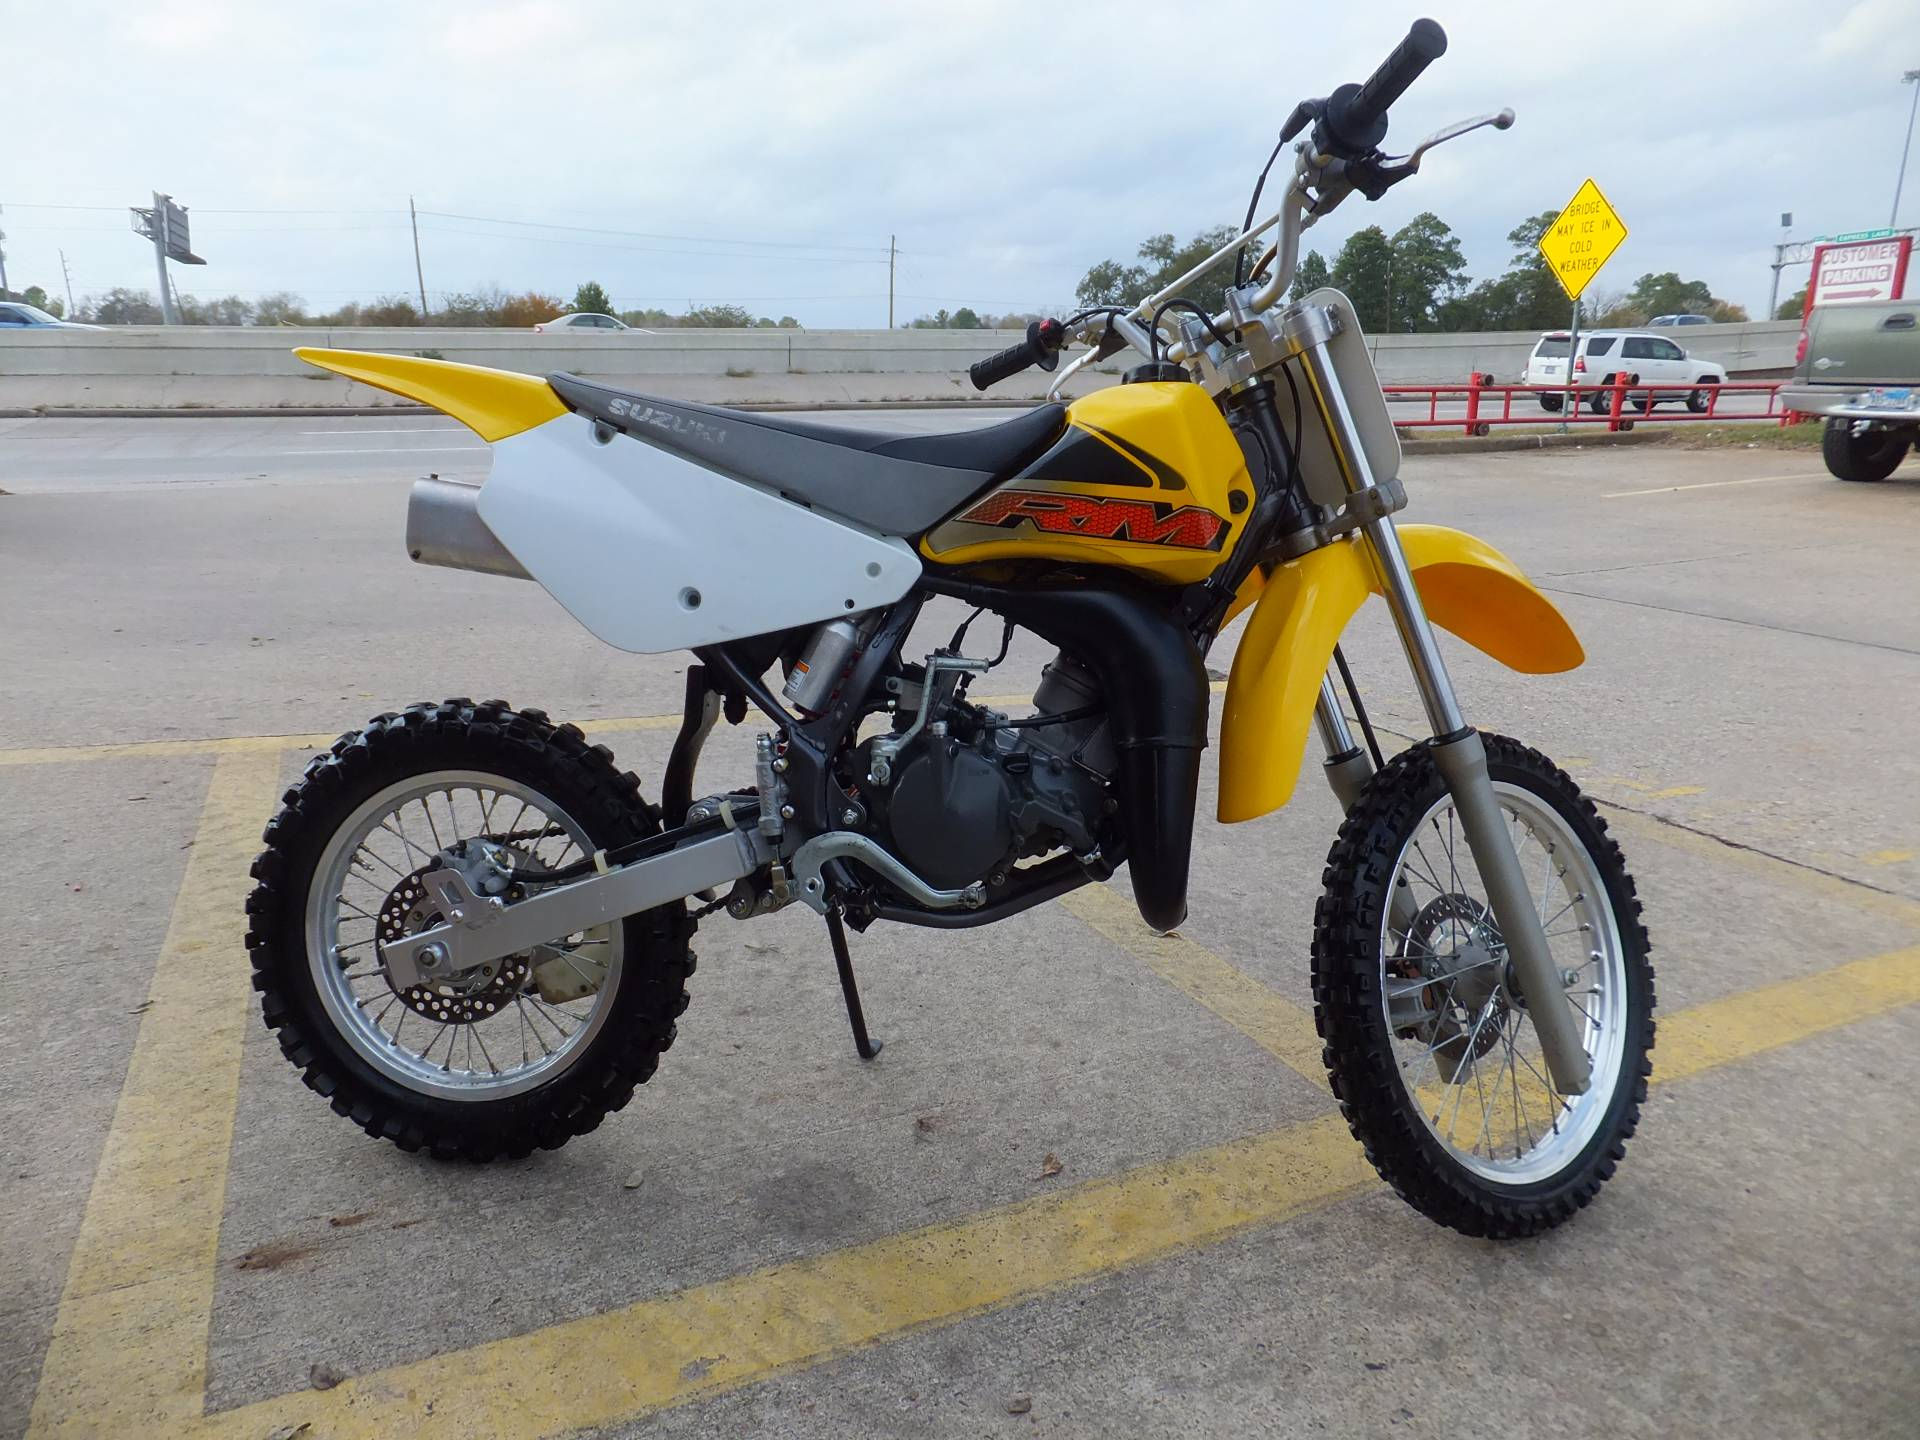 Used 2000 Suzuki Rm80 Motorcycles In Humble  Tx